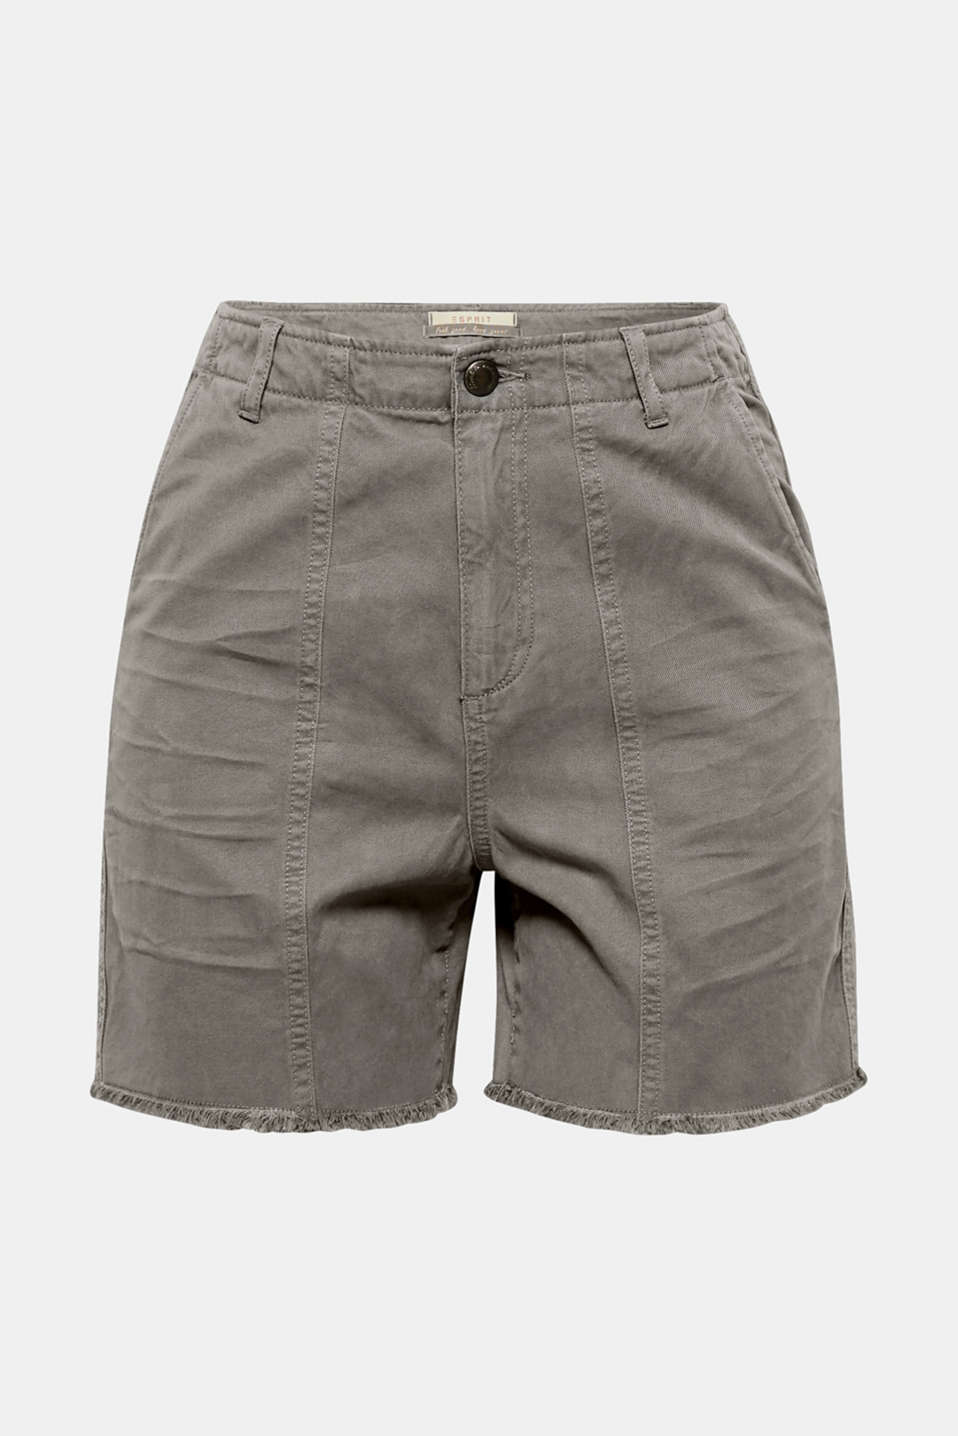 The fine texture and frayed hem give these cotton shorts their summery, casual flair!